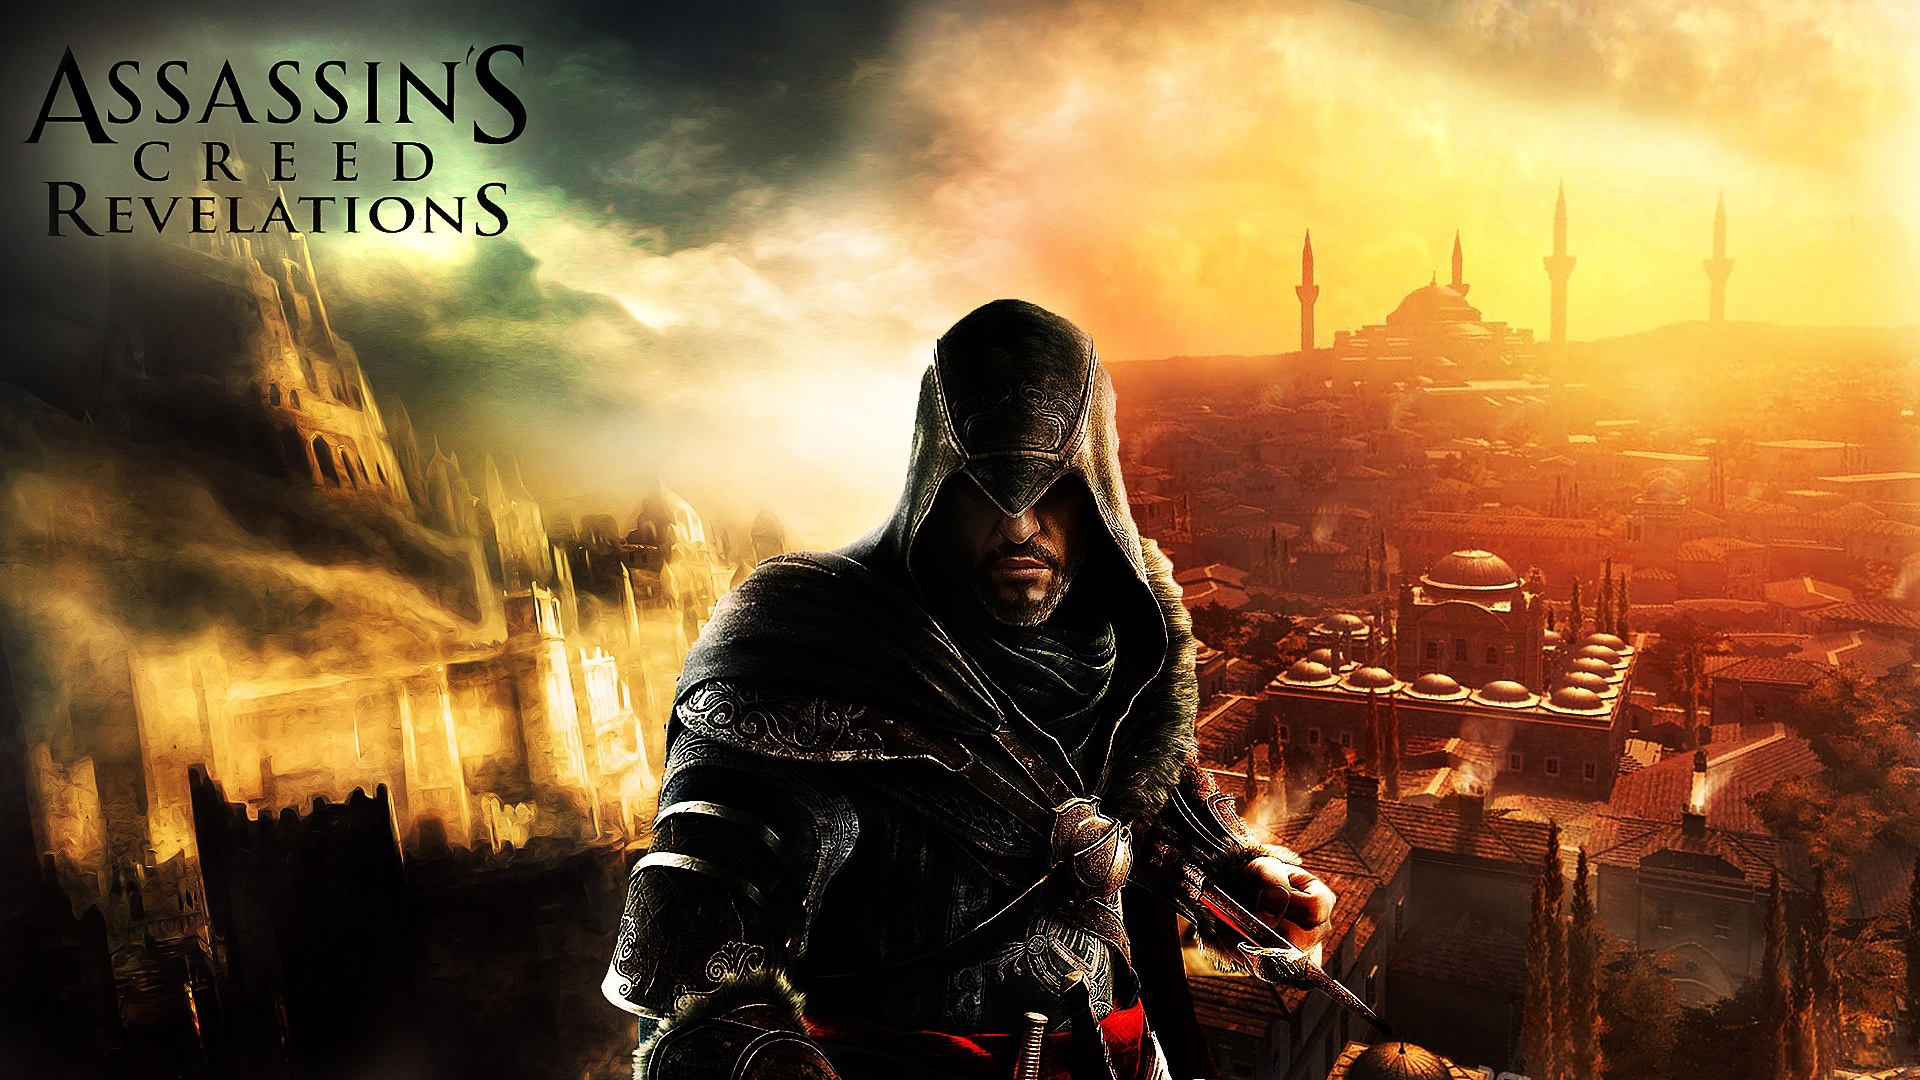 Wallpaper Action Game Assassins Creed Revelations